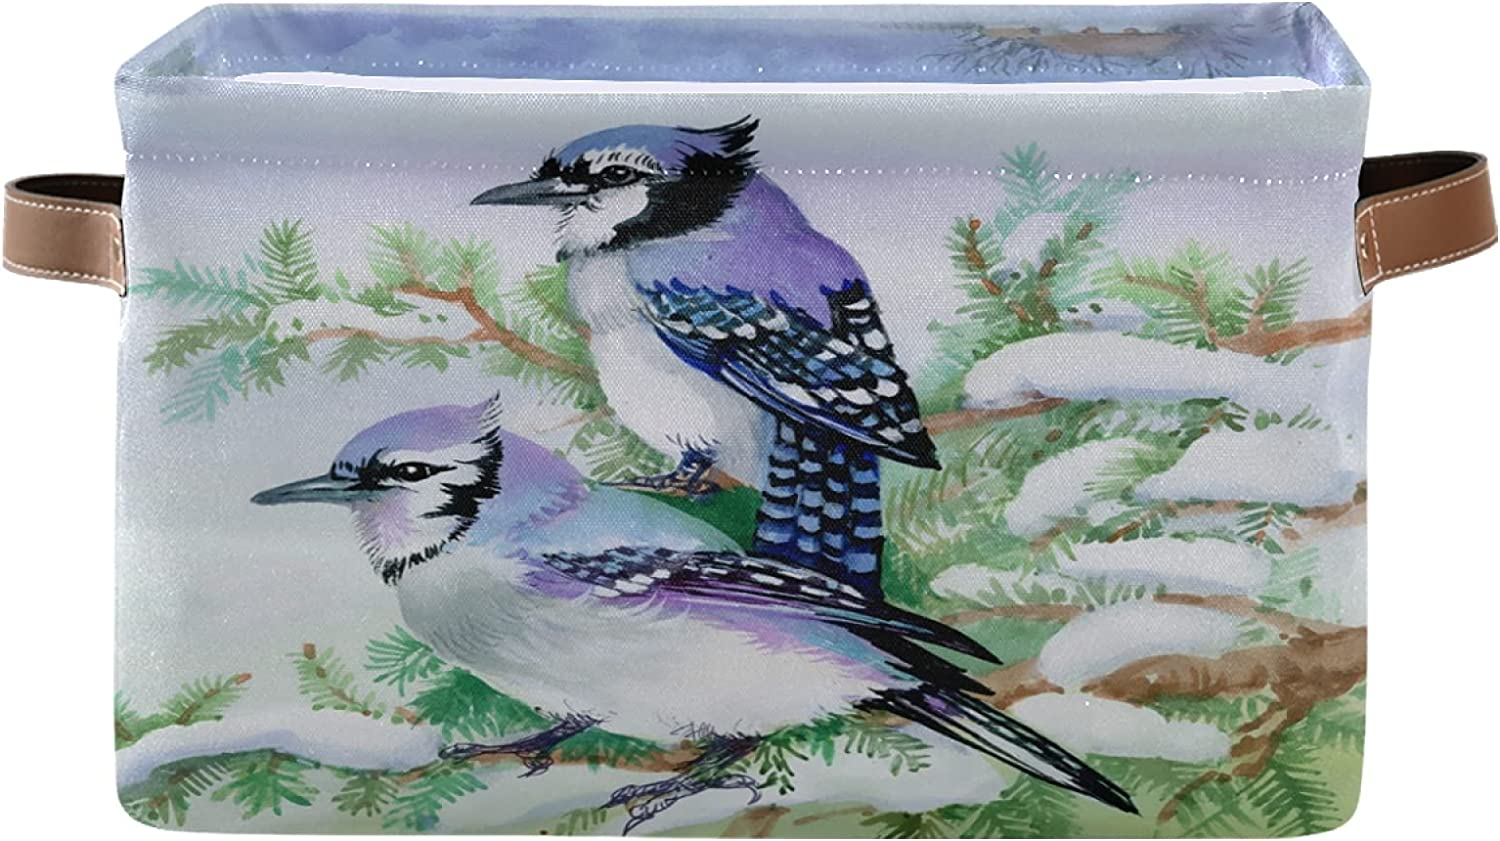 Foldable Square Storage Basket Shelf Bird Wit SEAL limited Limited time for free shipping product Watercolor